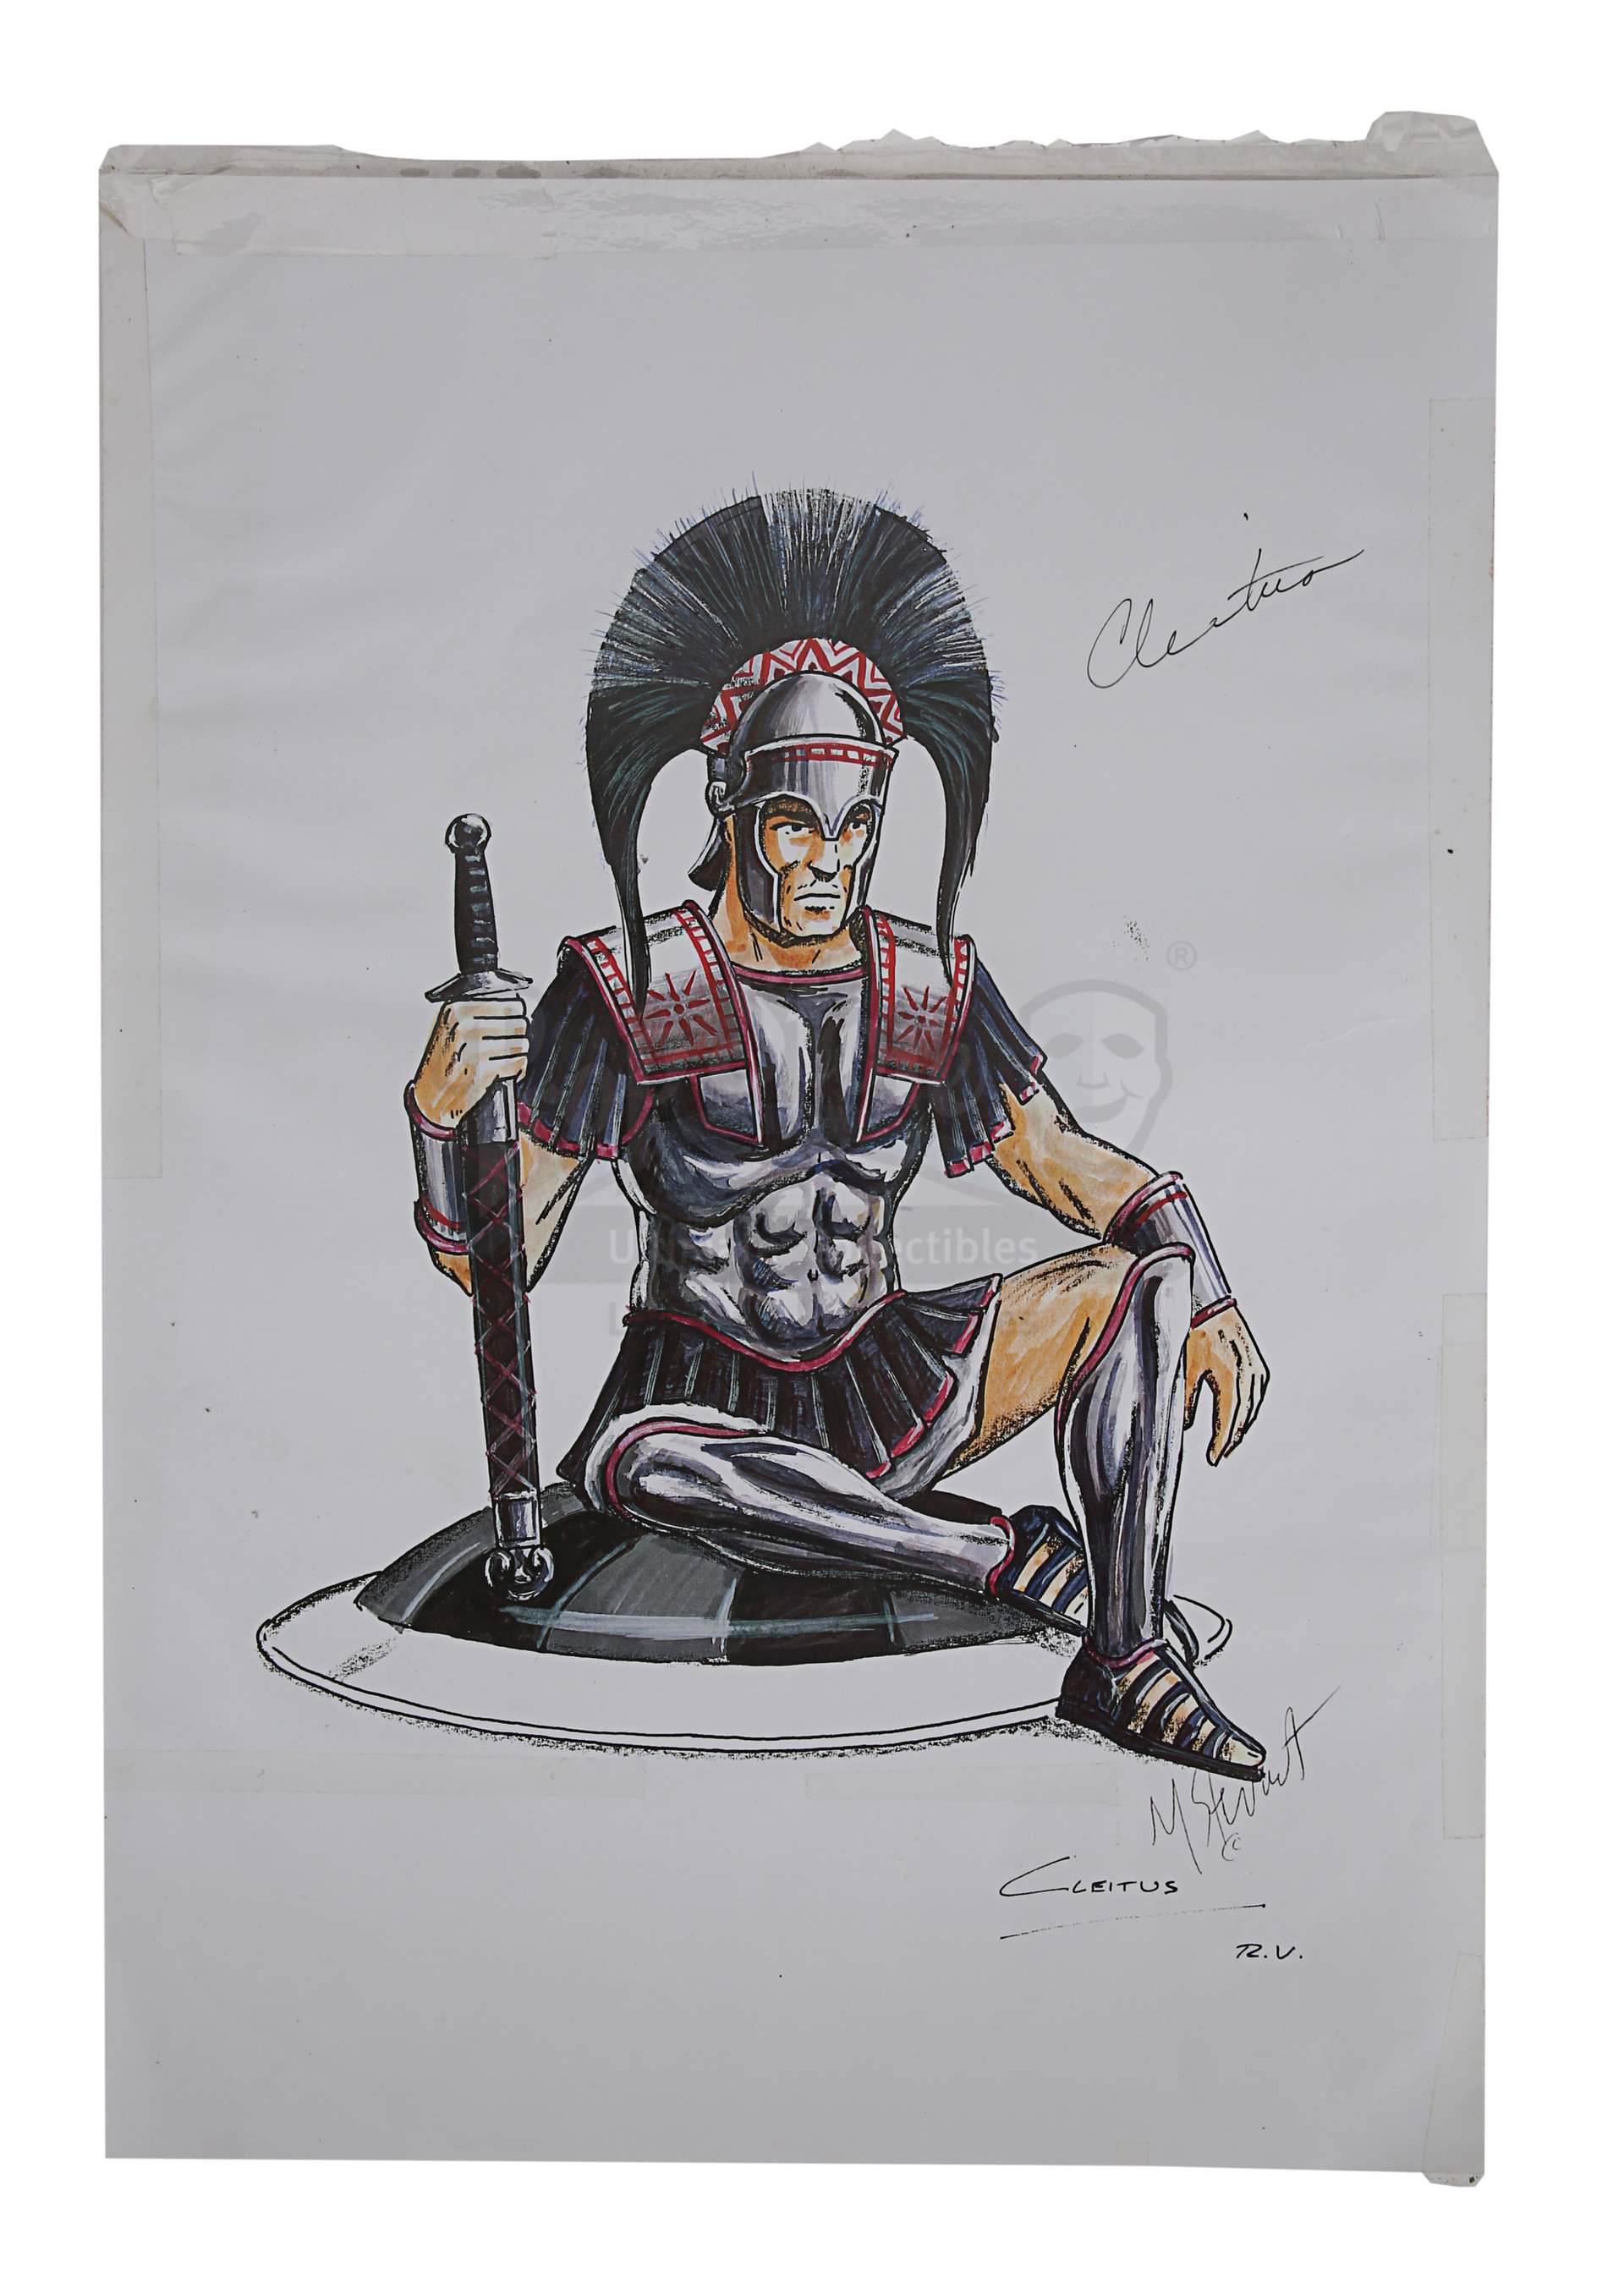 ALEXANDER (2004) - Hand-Drawn Alexander (Colin Farrell) Costume Sketches, Printed Character Concept - Image 5 of 10